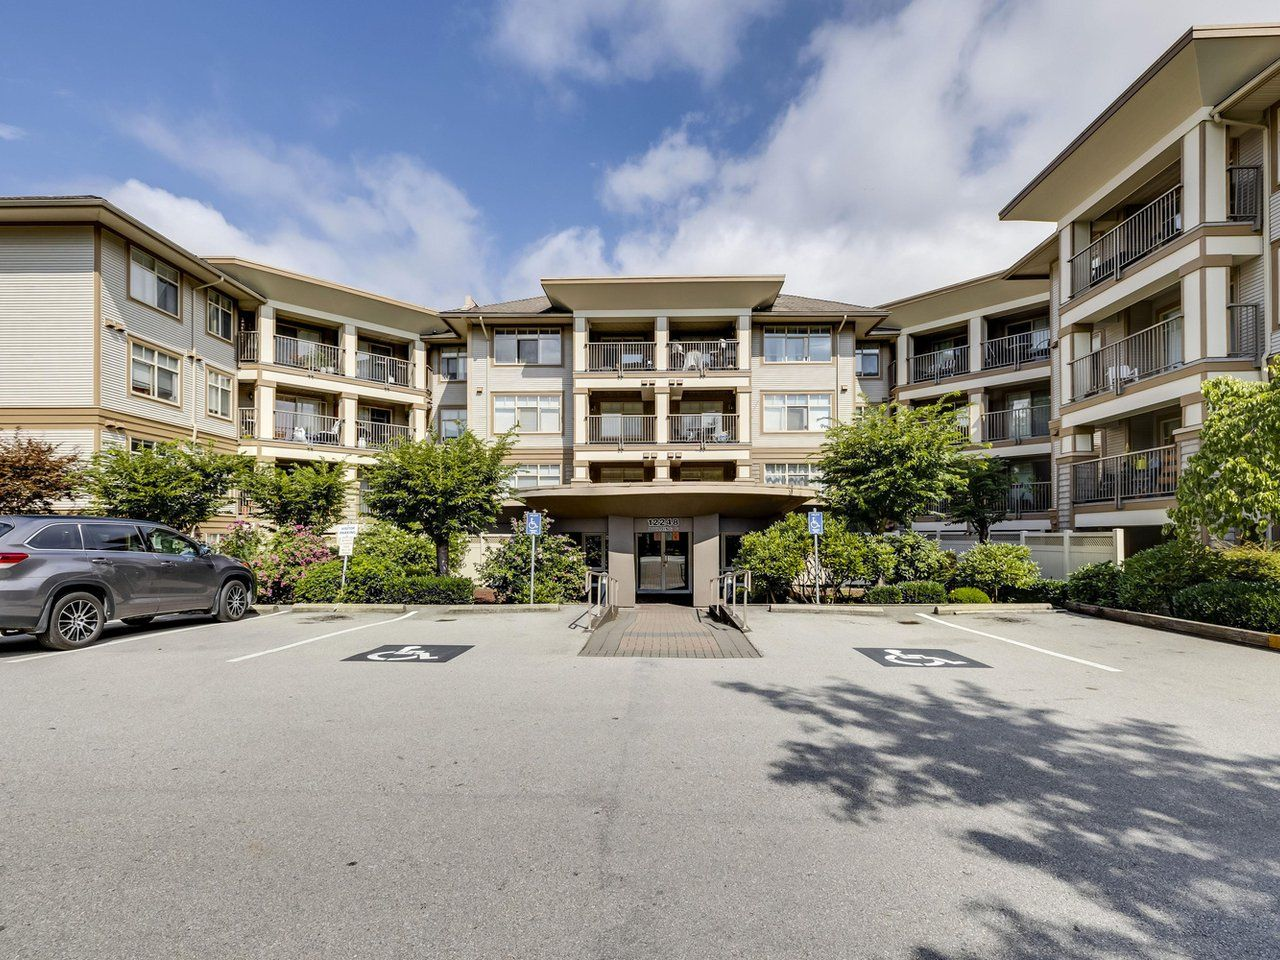 Main Photo: 122 12248 224 Street in Maple Ridge: East Central Condo for sale : MLS®# R2612455